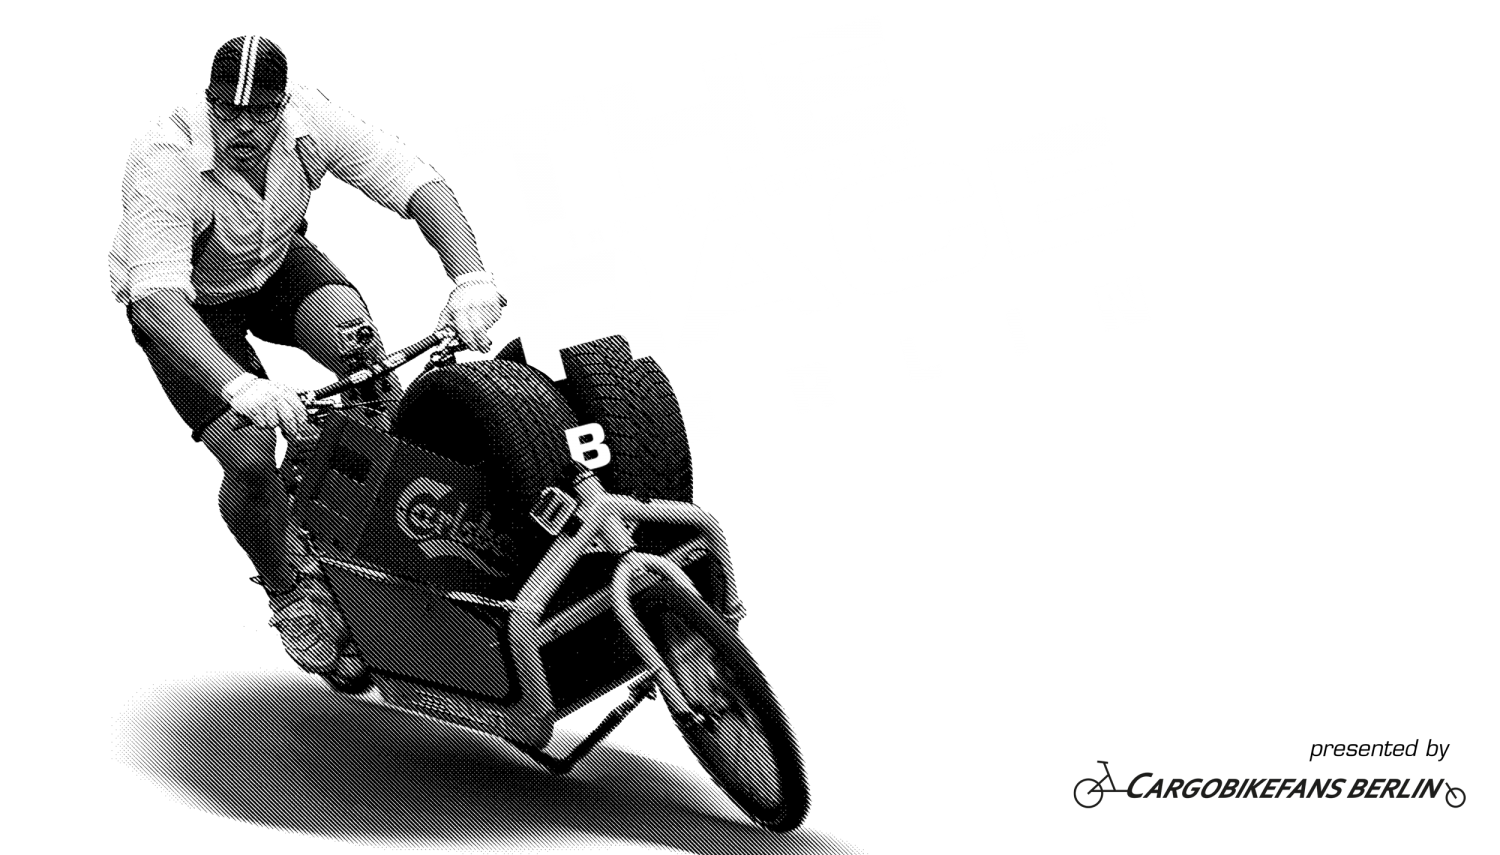 Int. Berlin Cargobike Race 2017